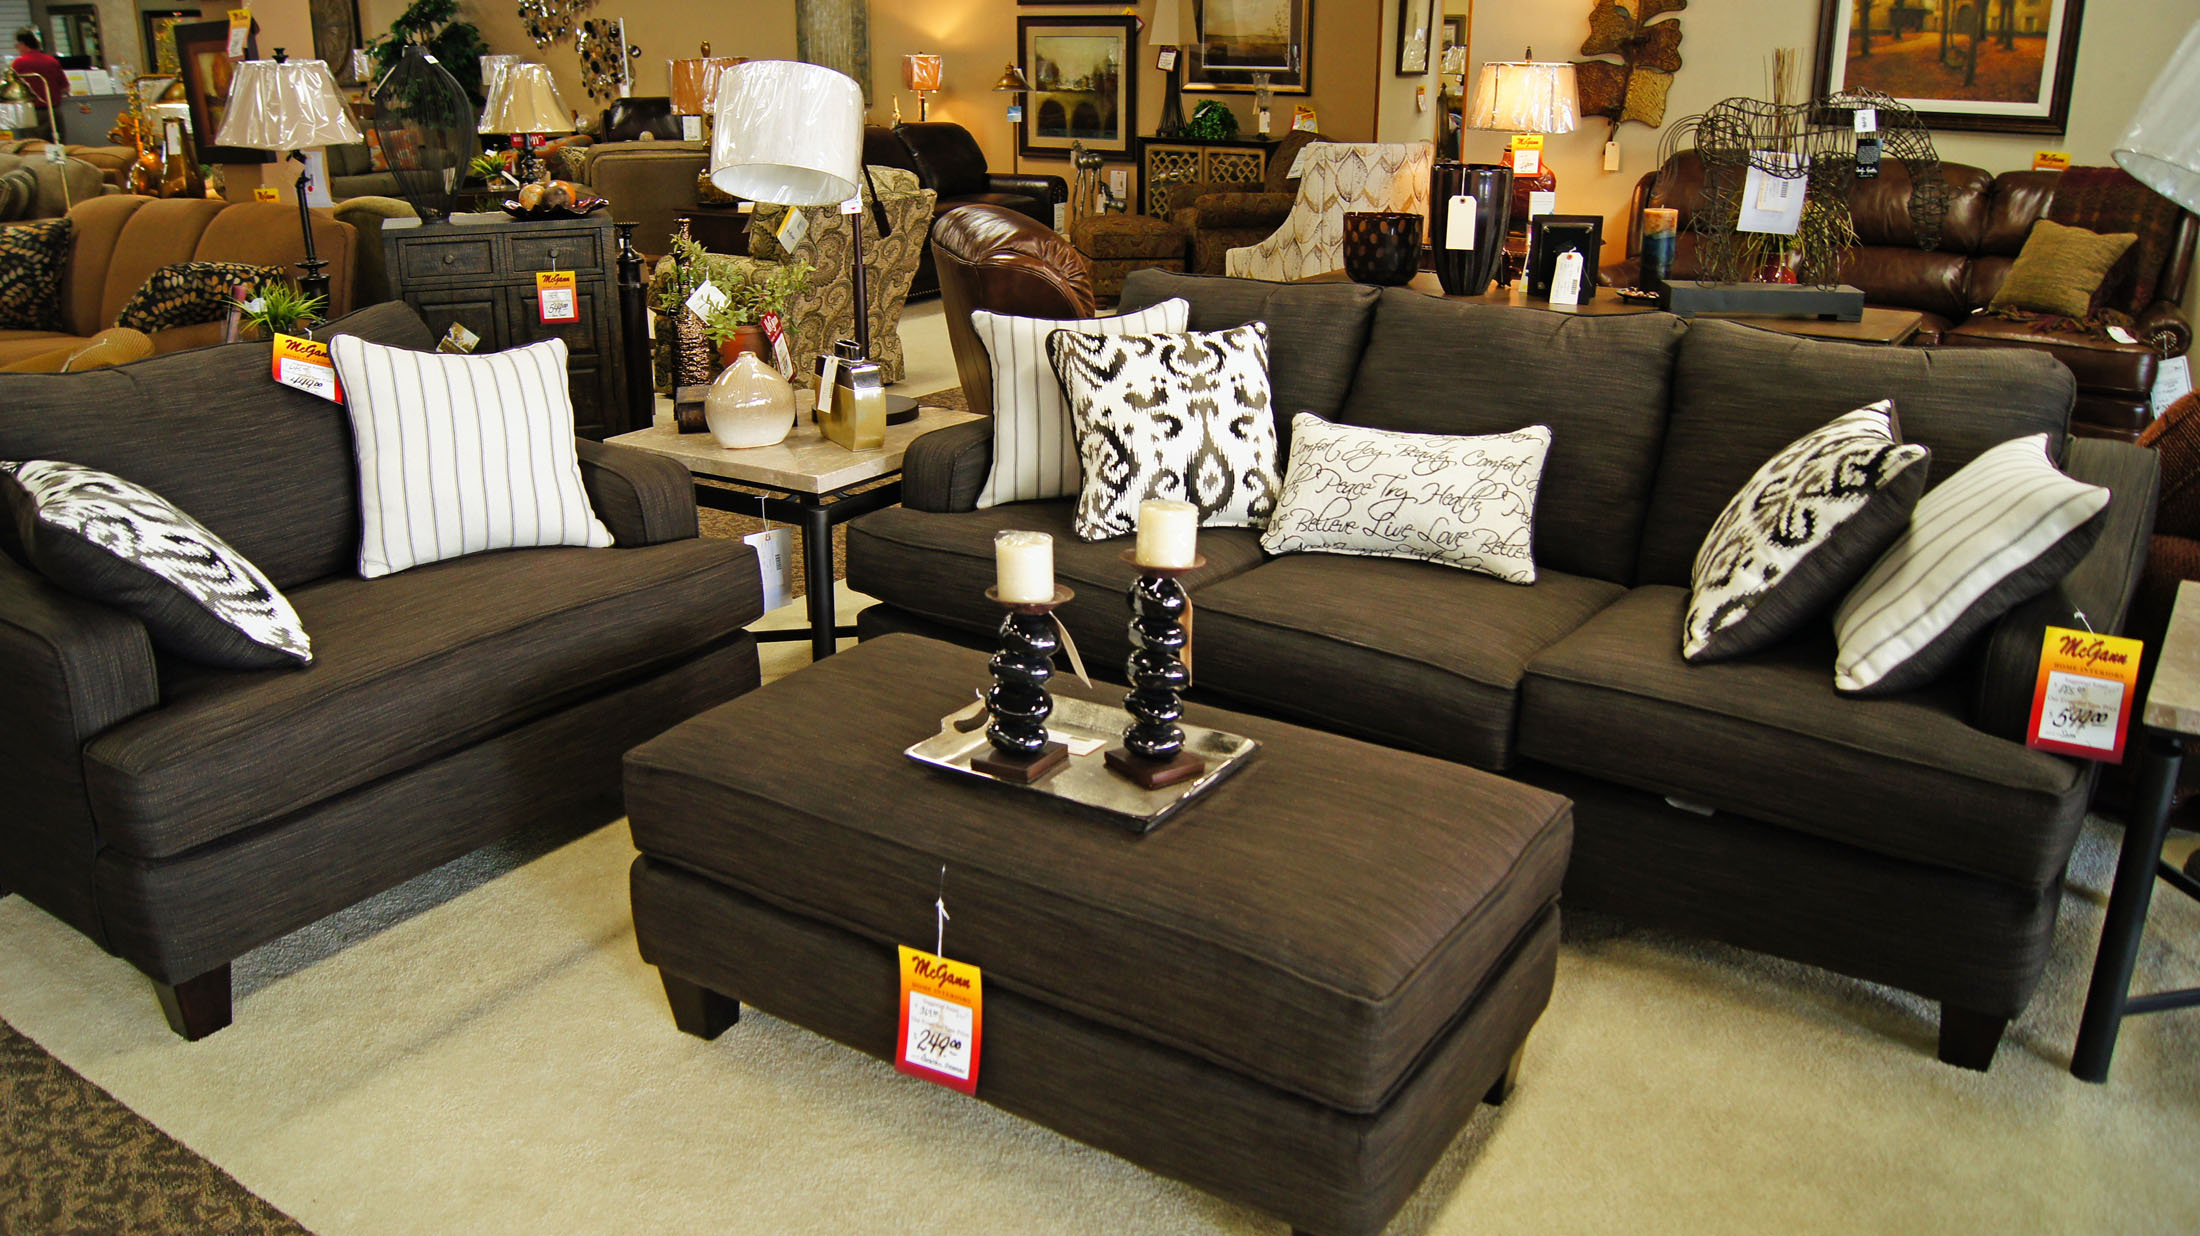 Mcgann furniture home store of baraboo wisconsin for Design your own furniture online free